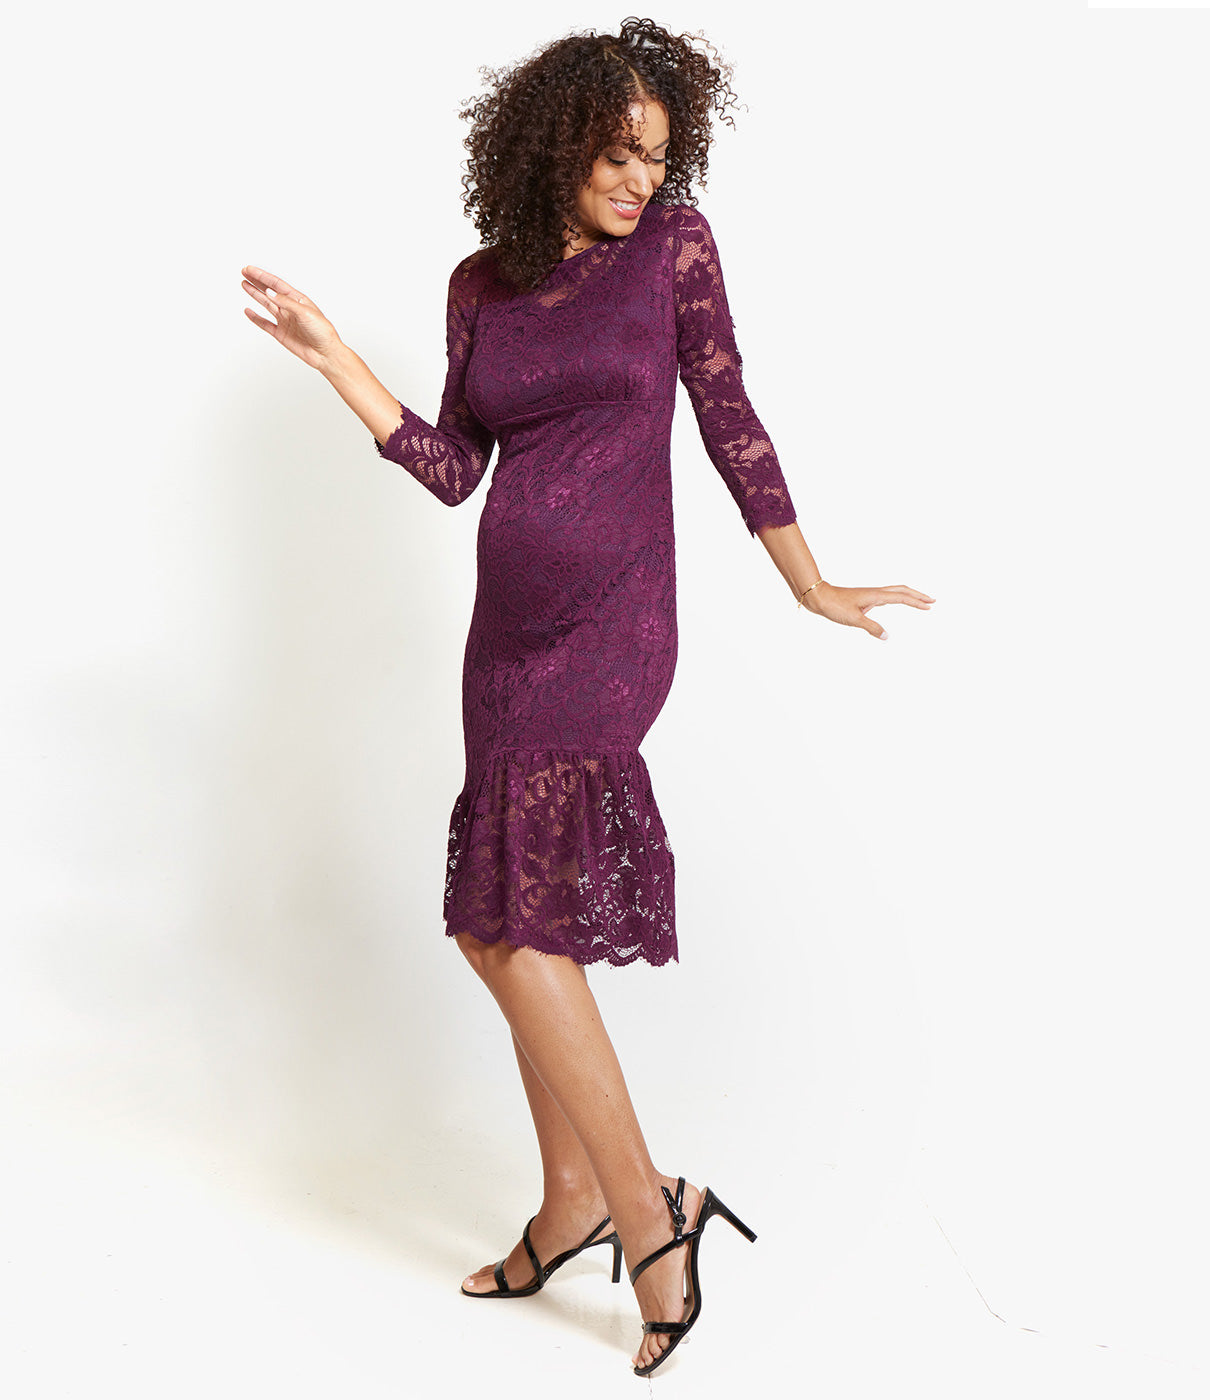 FLATTERING FITThis lace dress has just the right amount of stretch and a concealed back zipper, for the most figure-flattering yet comfy fit.